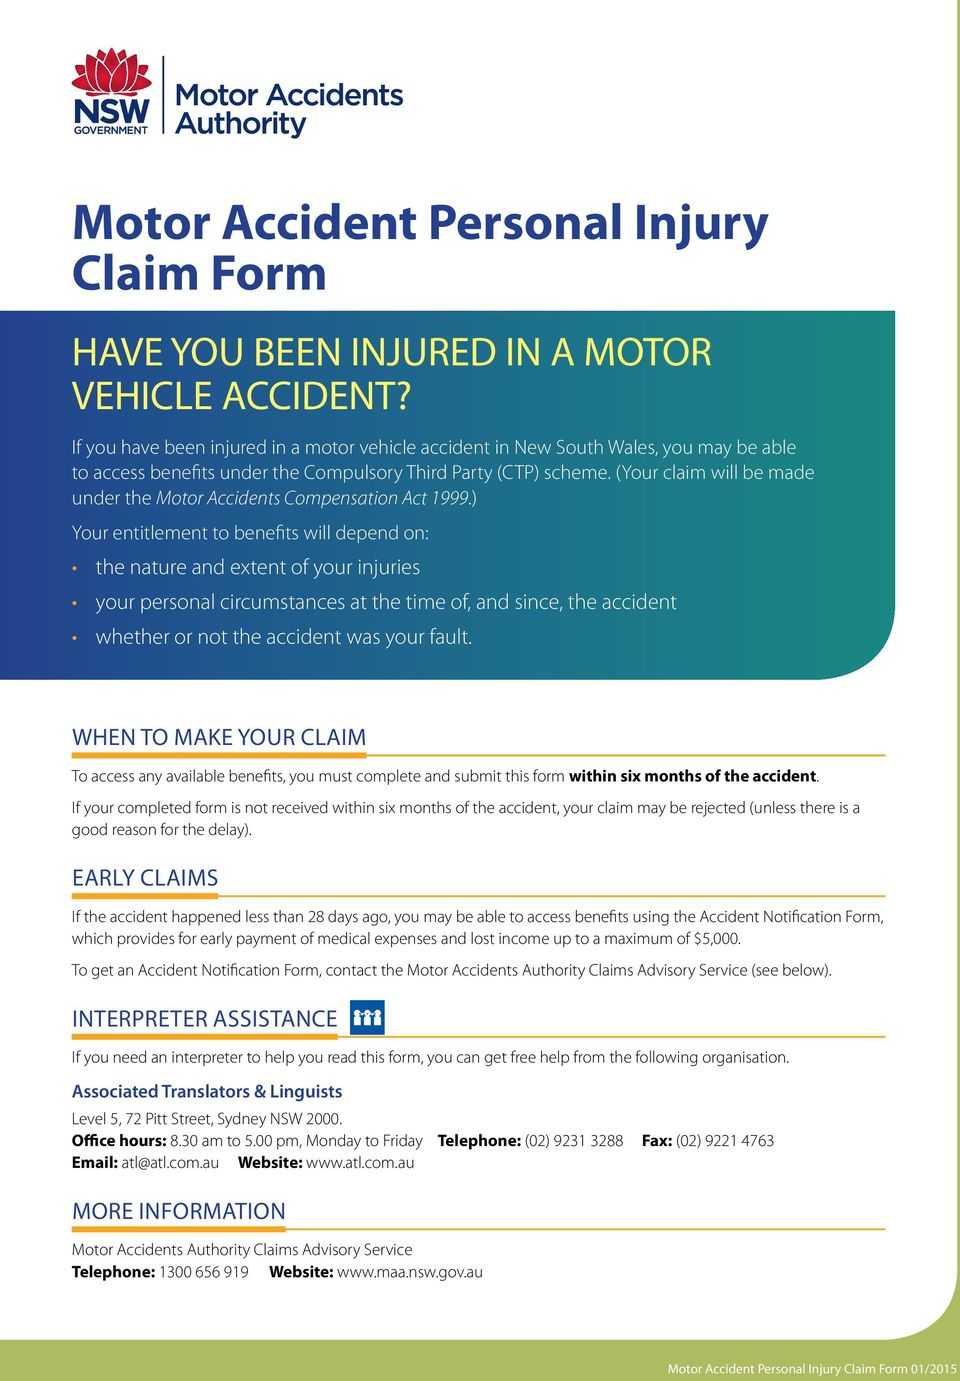 (Your claim will be made under the Motor Accidents Compensation Act 1999.